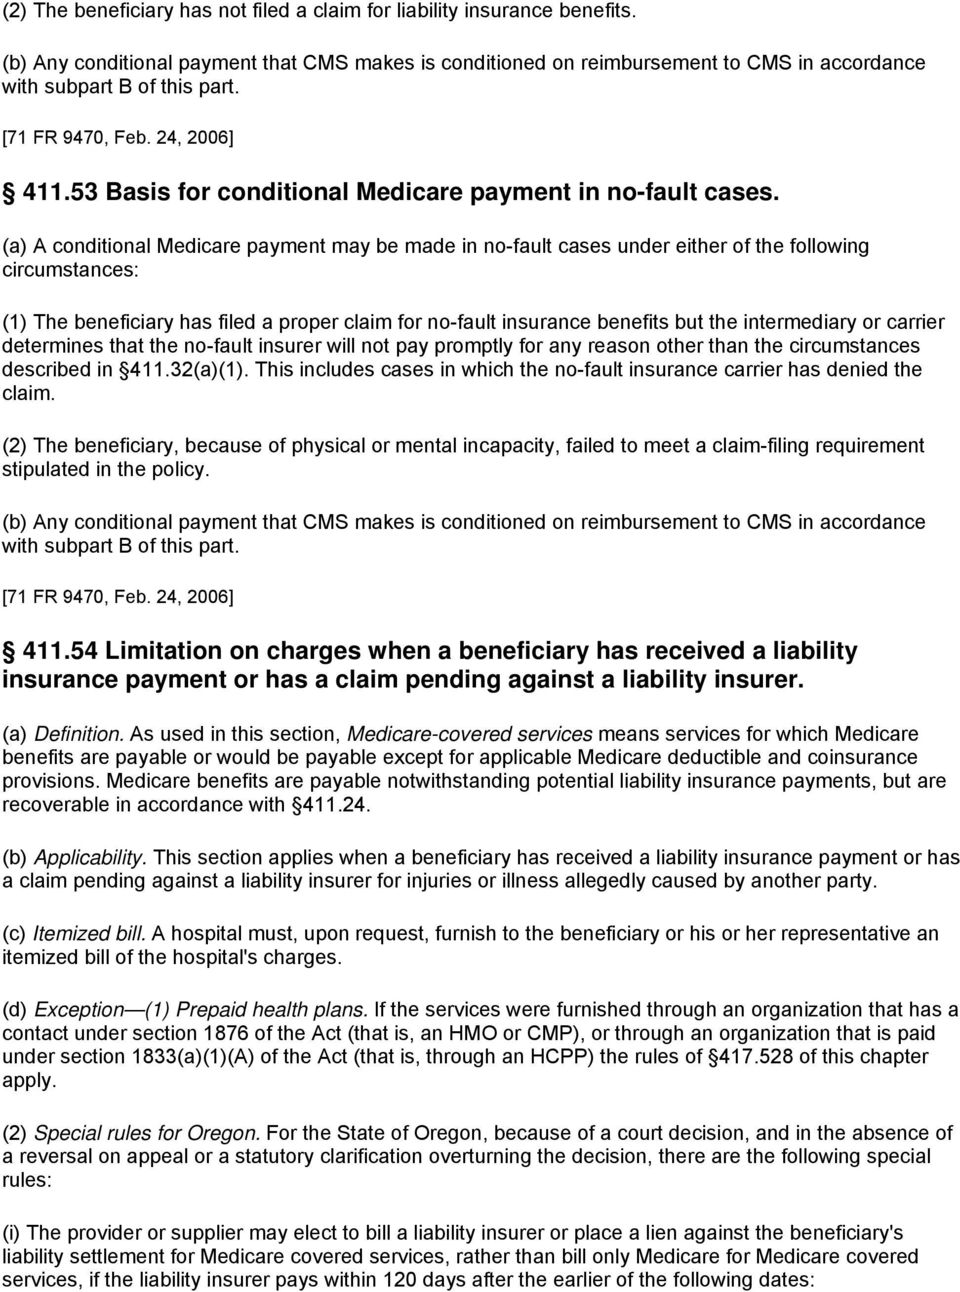 subpart b insurance coverage that limits medicare payment: general